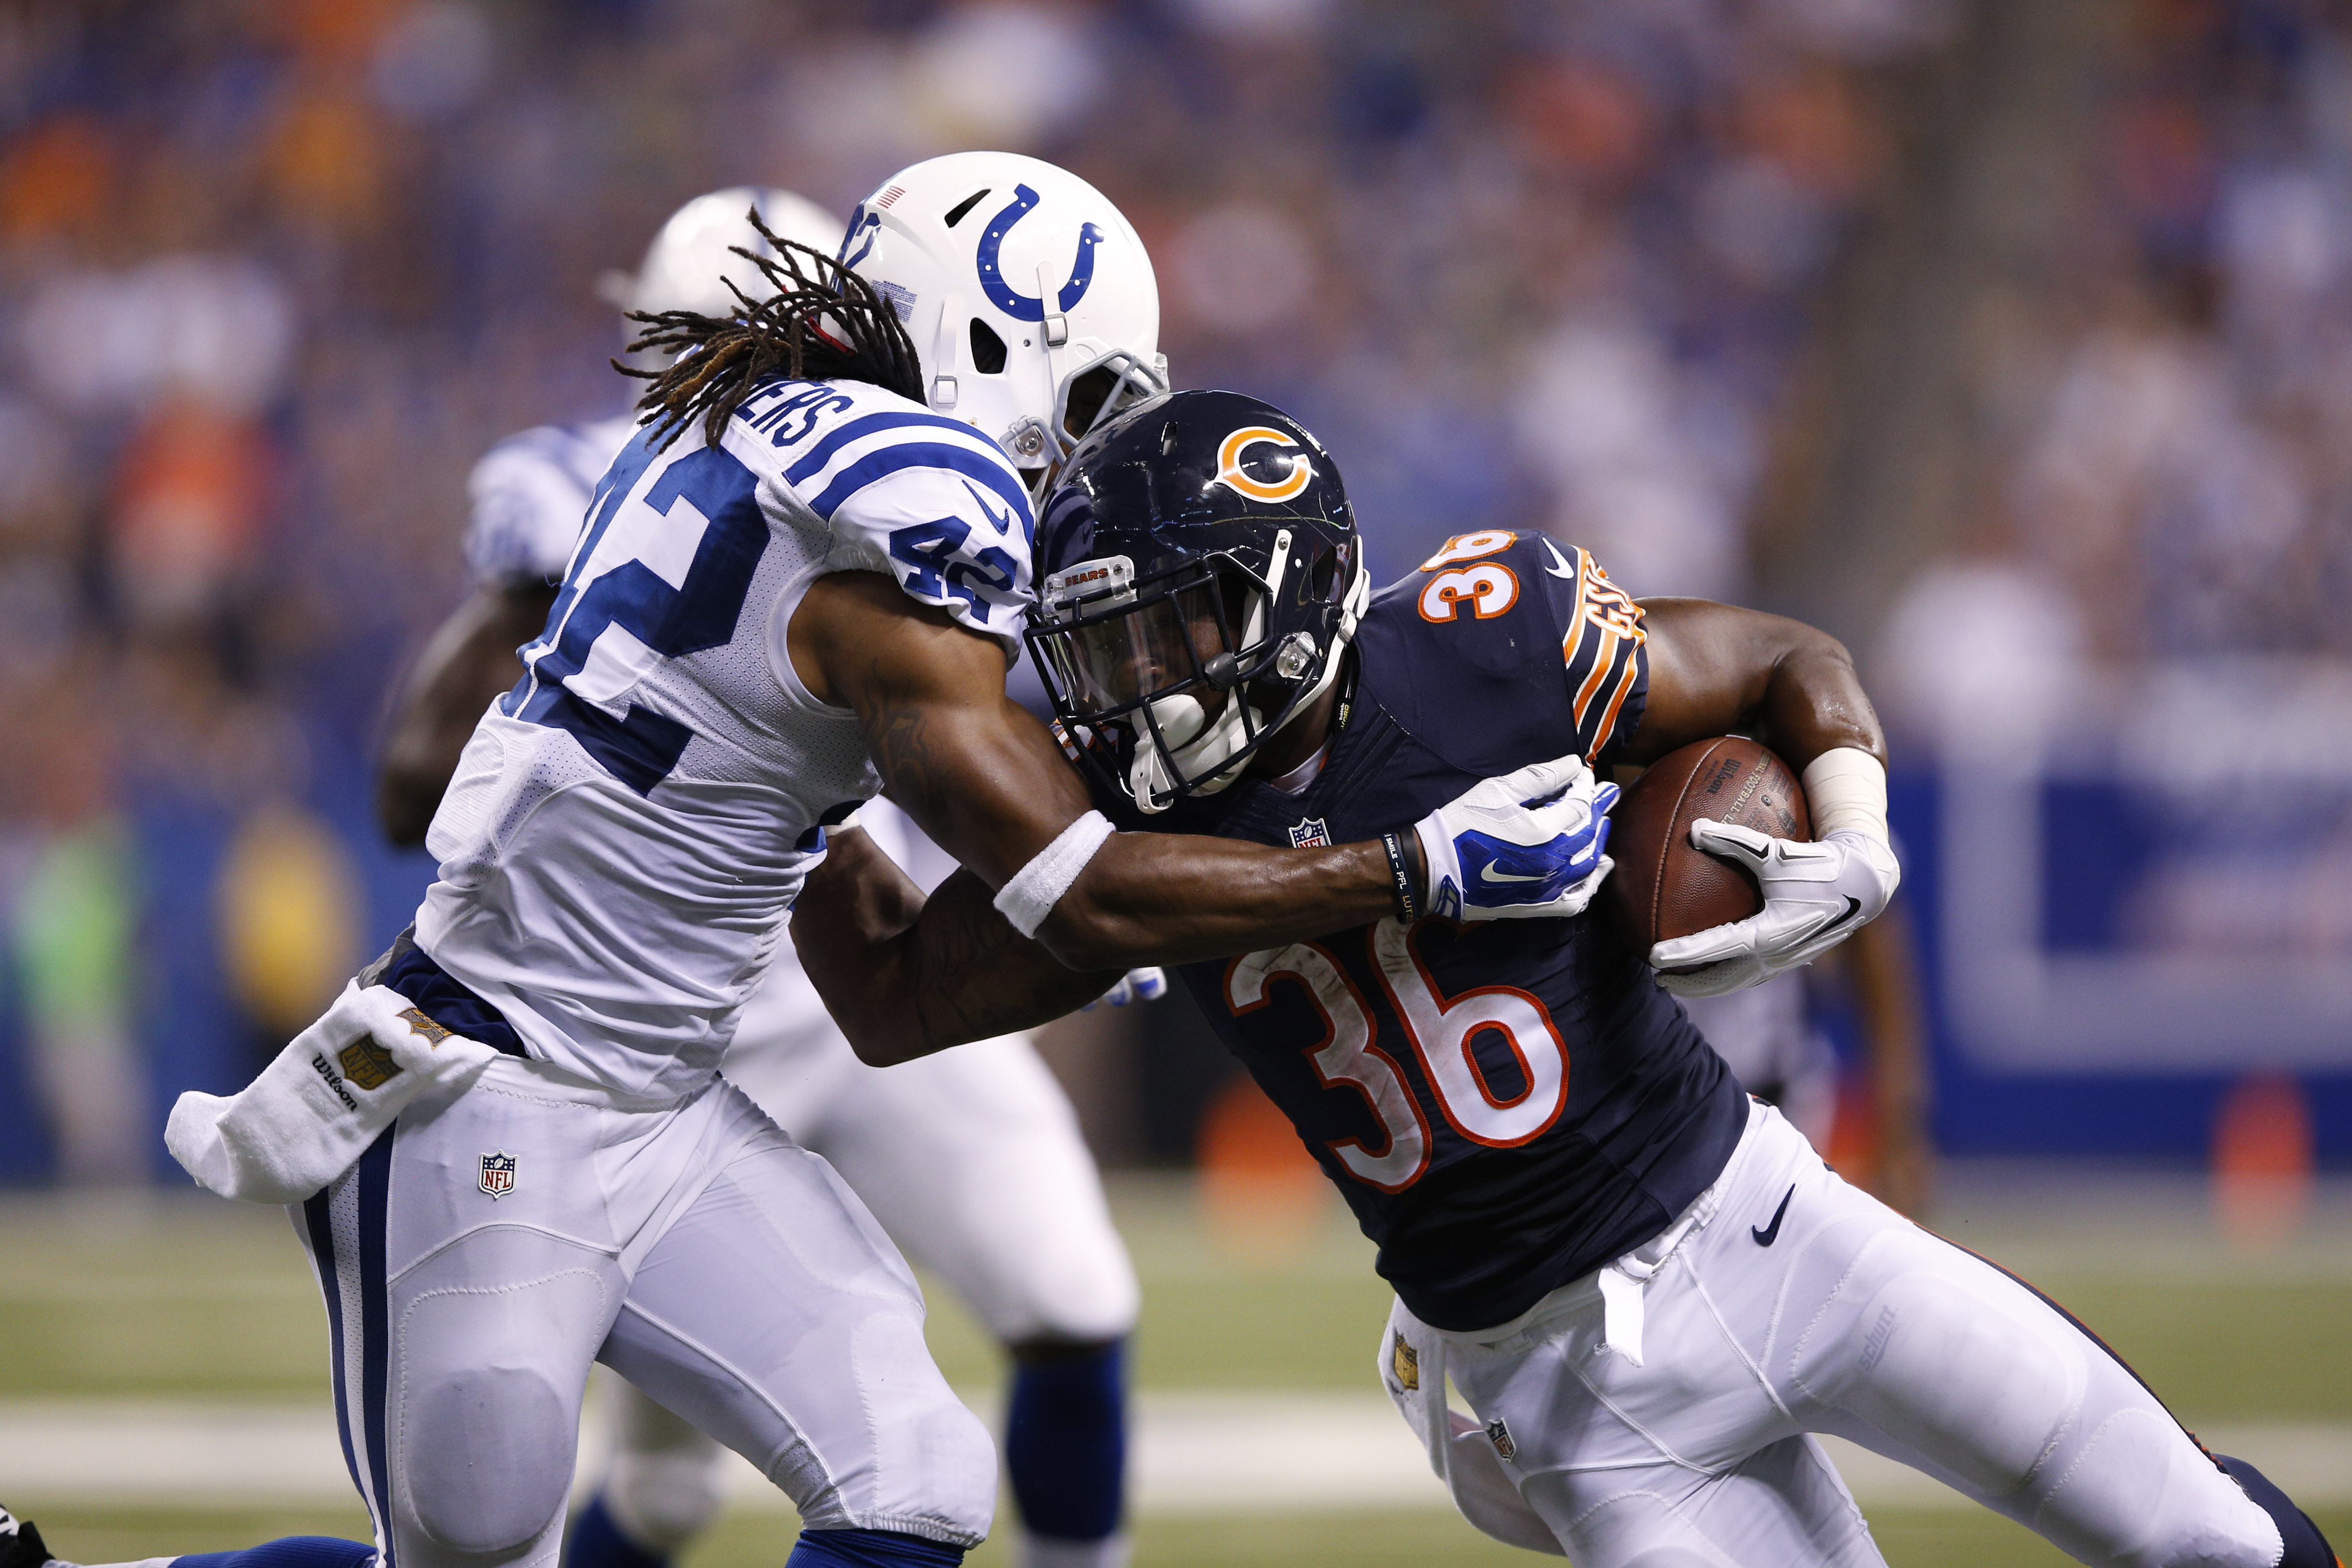 484914286-chicago-bears-v-indianapolis-colts.jpg